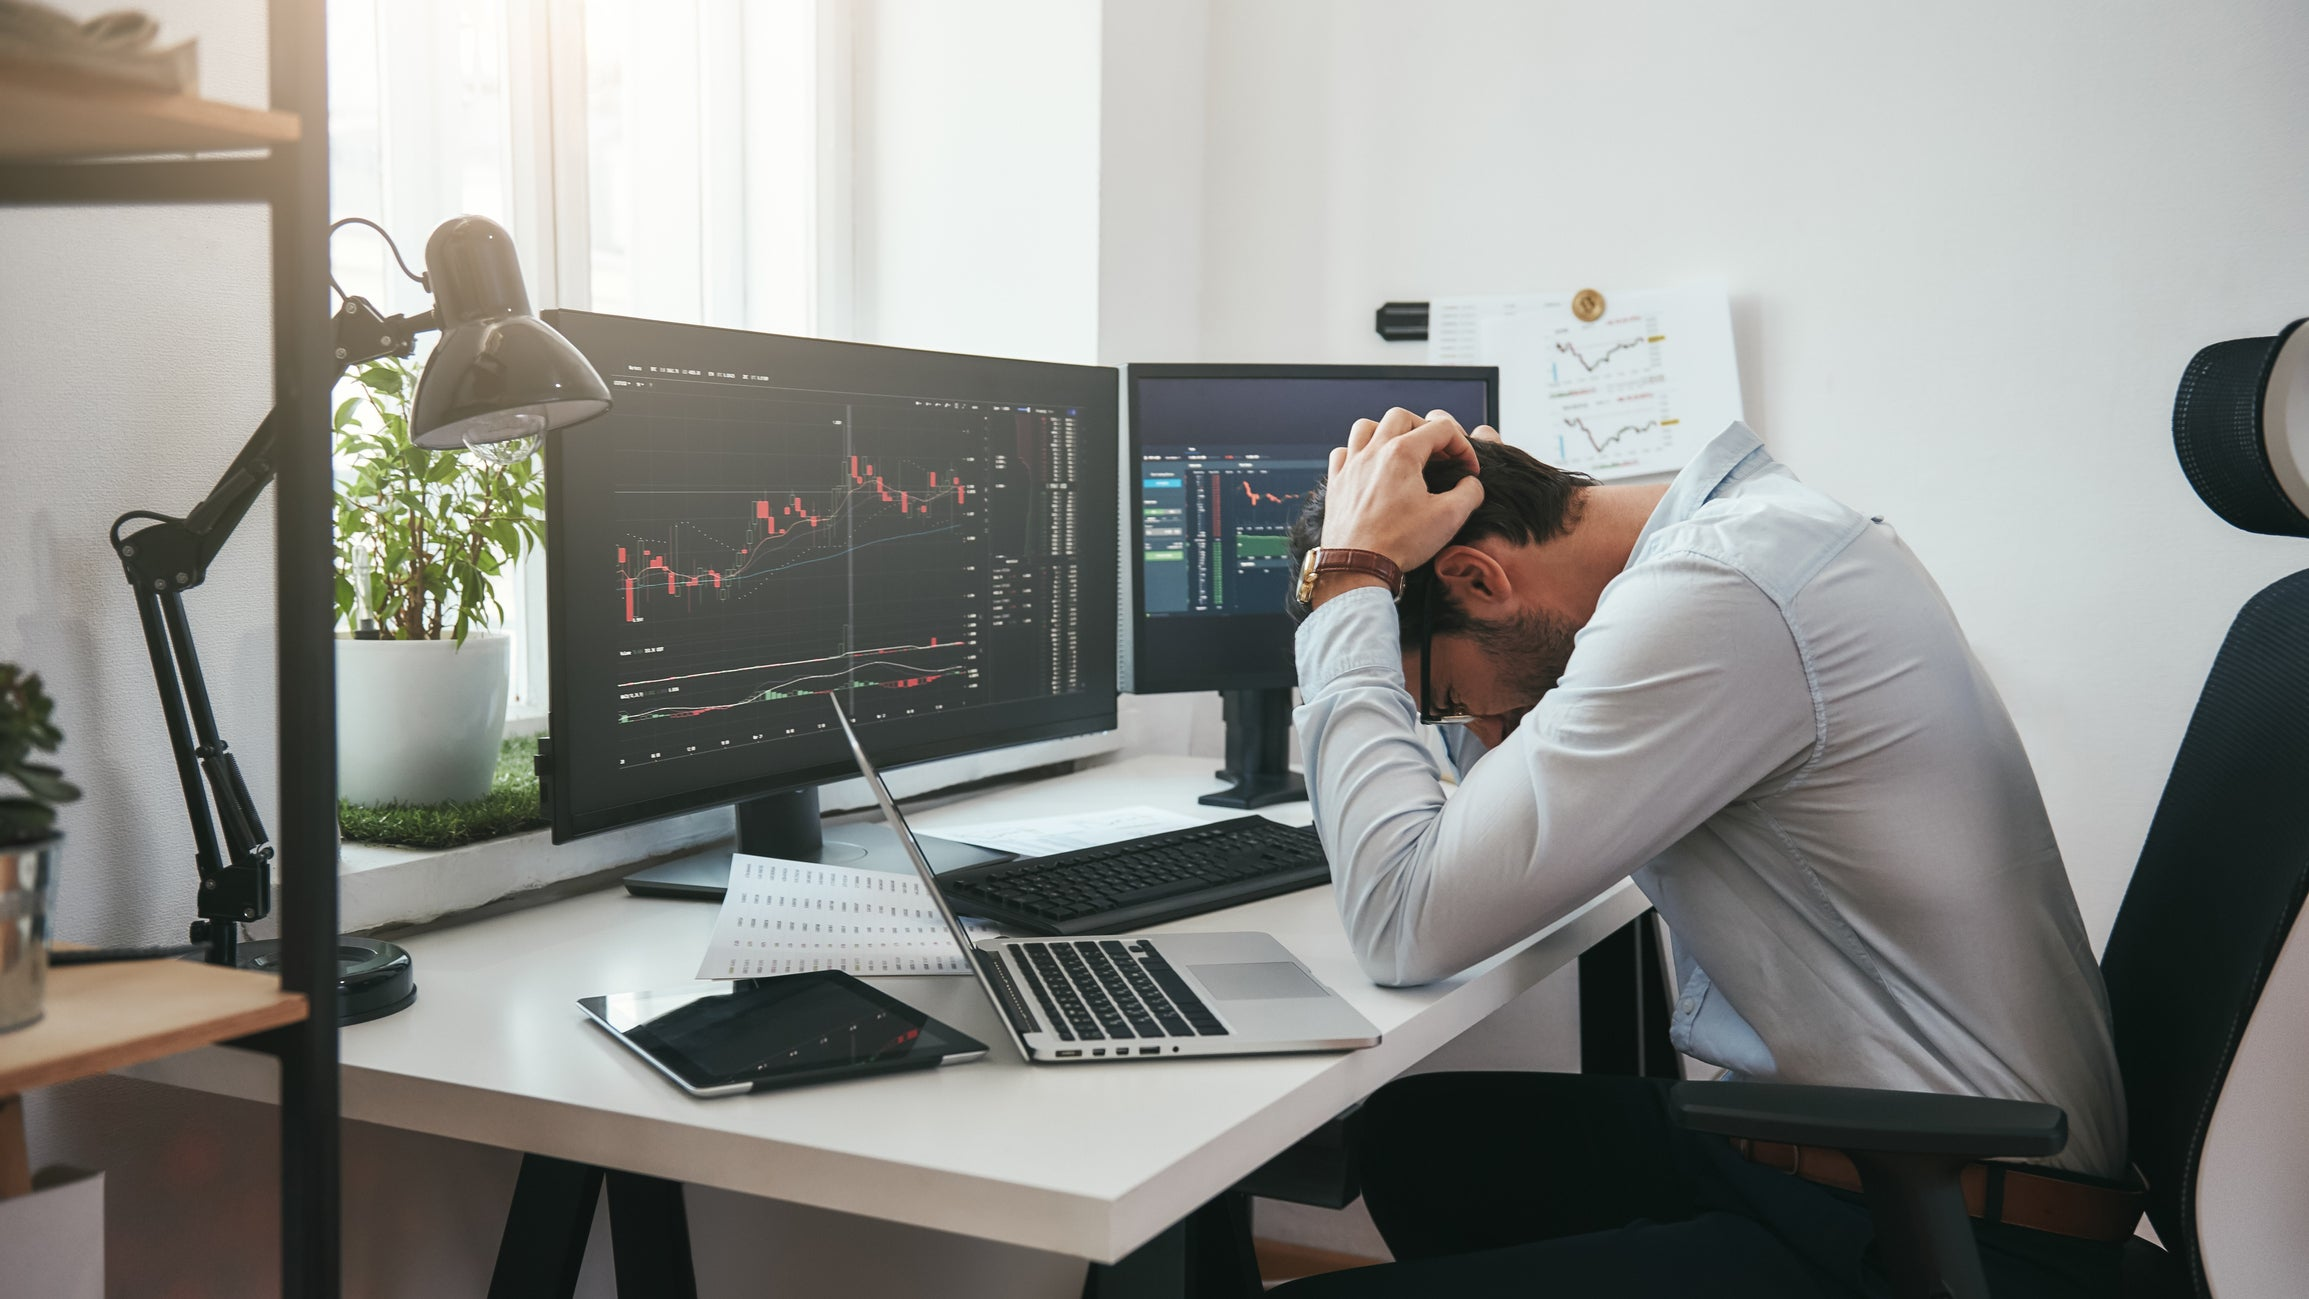 How to Prepare for a Second Stock Market Crash in 2020 | The Motley Fool